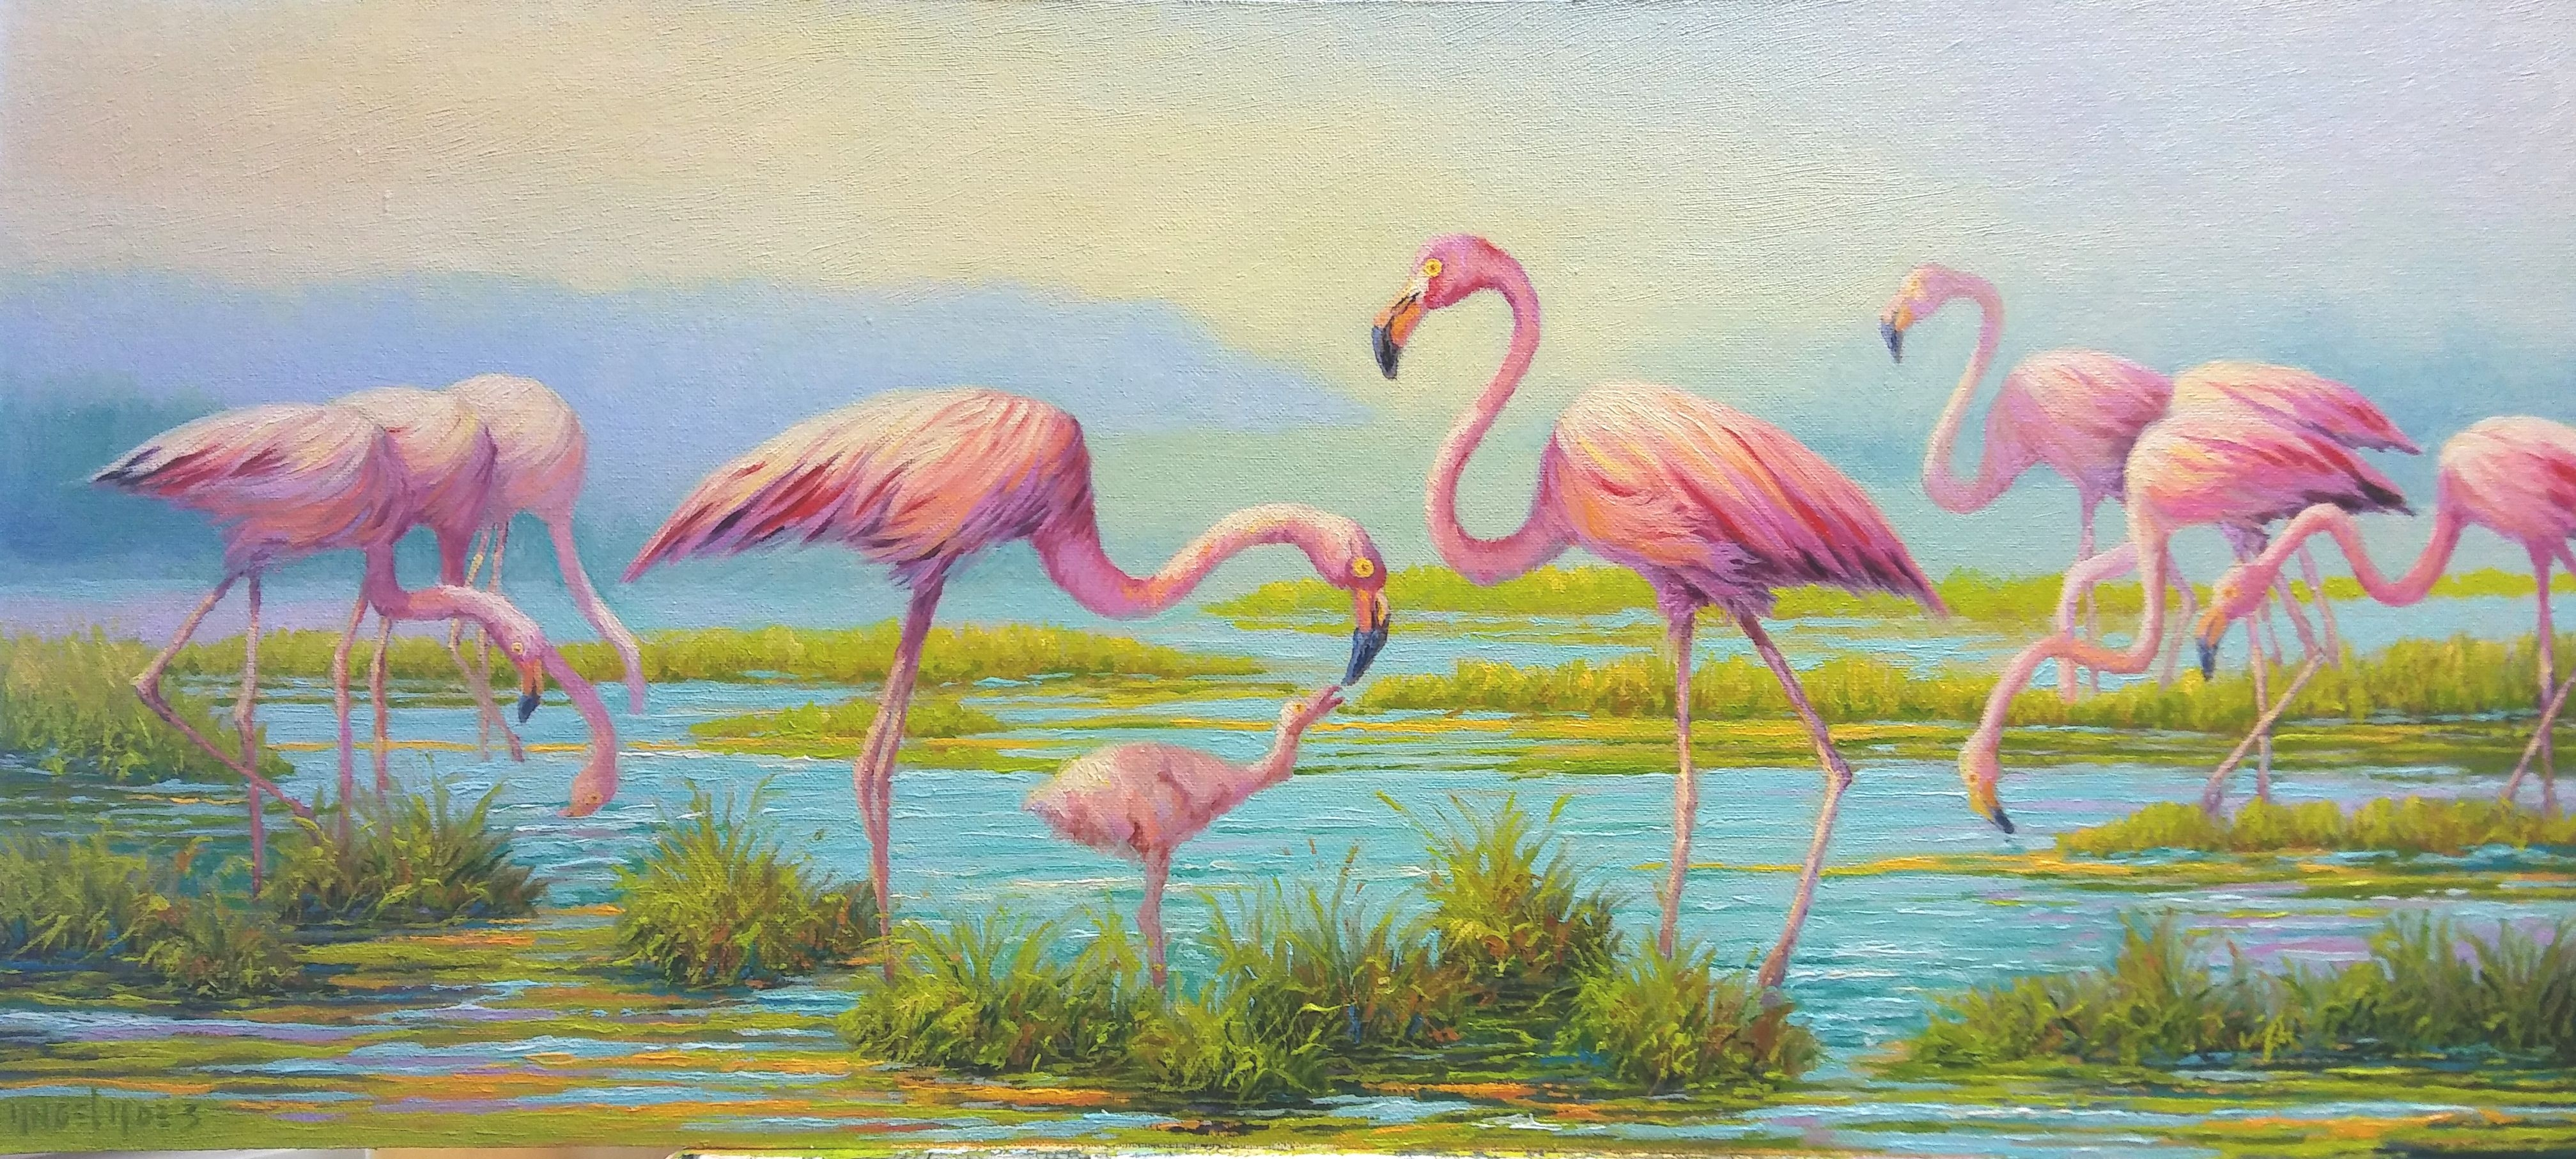 FAMILY OF PINK FLAMINGOS